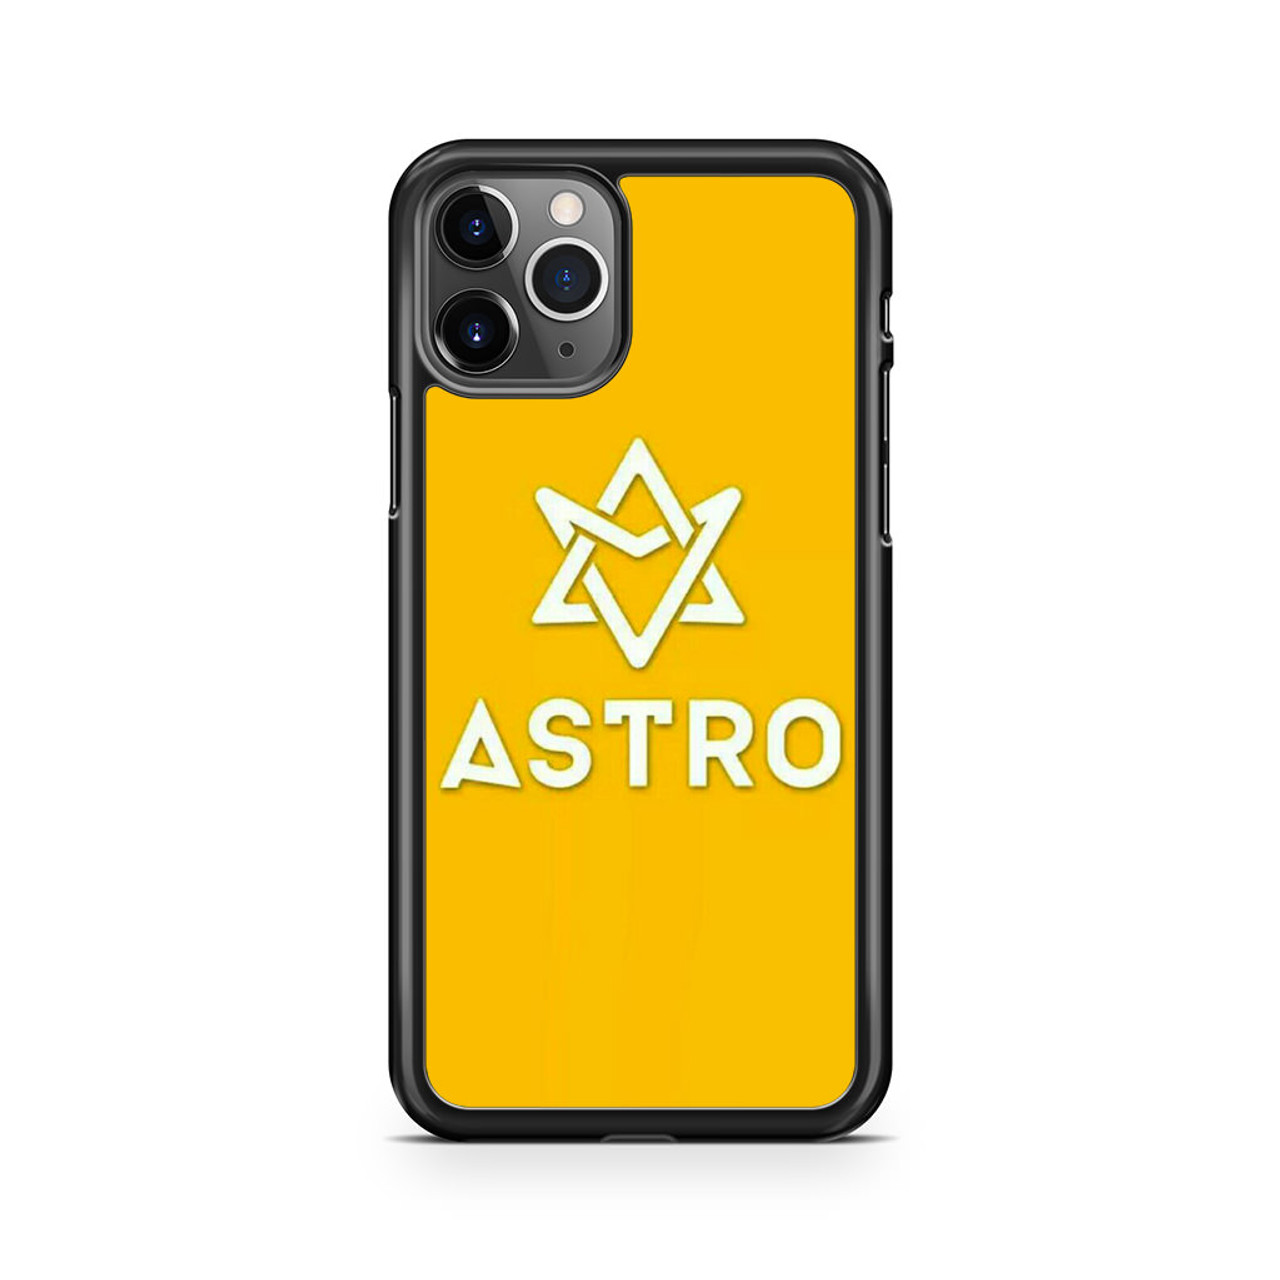 A KPOP THING - BLACK iphone 11 case